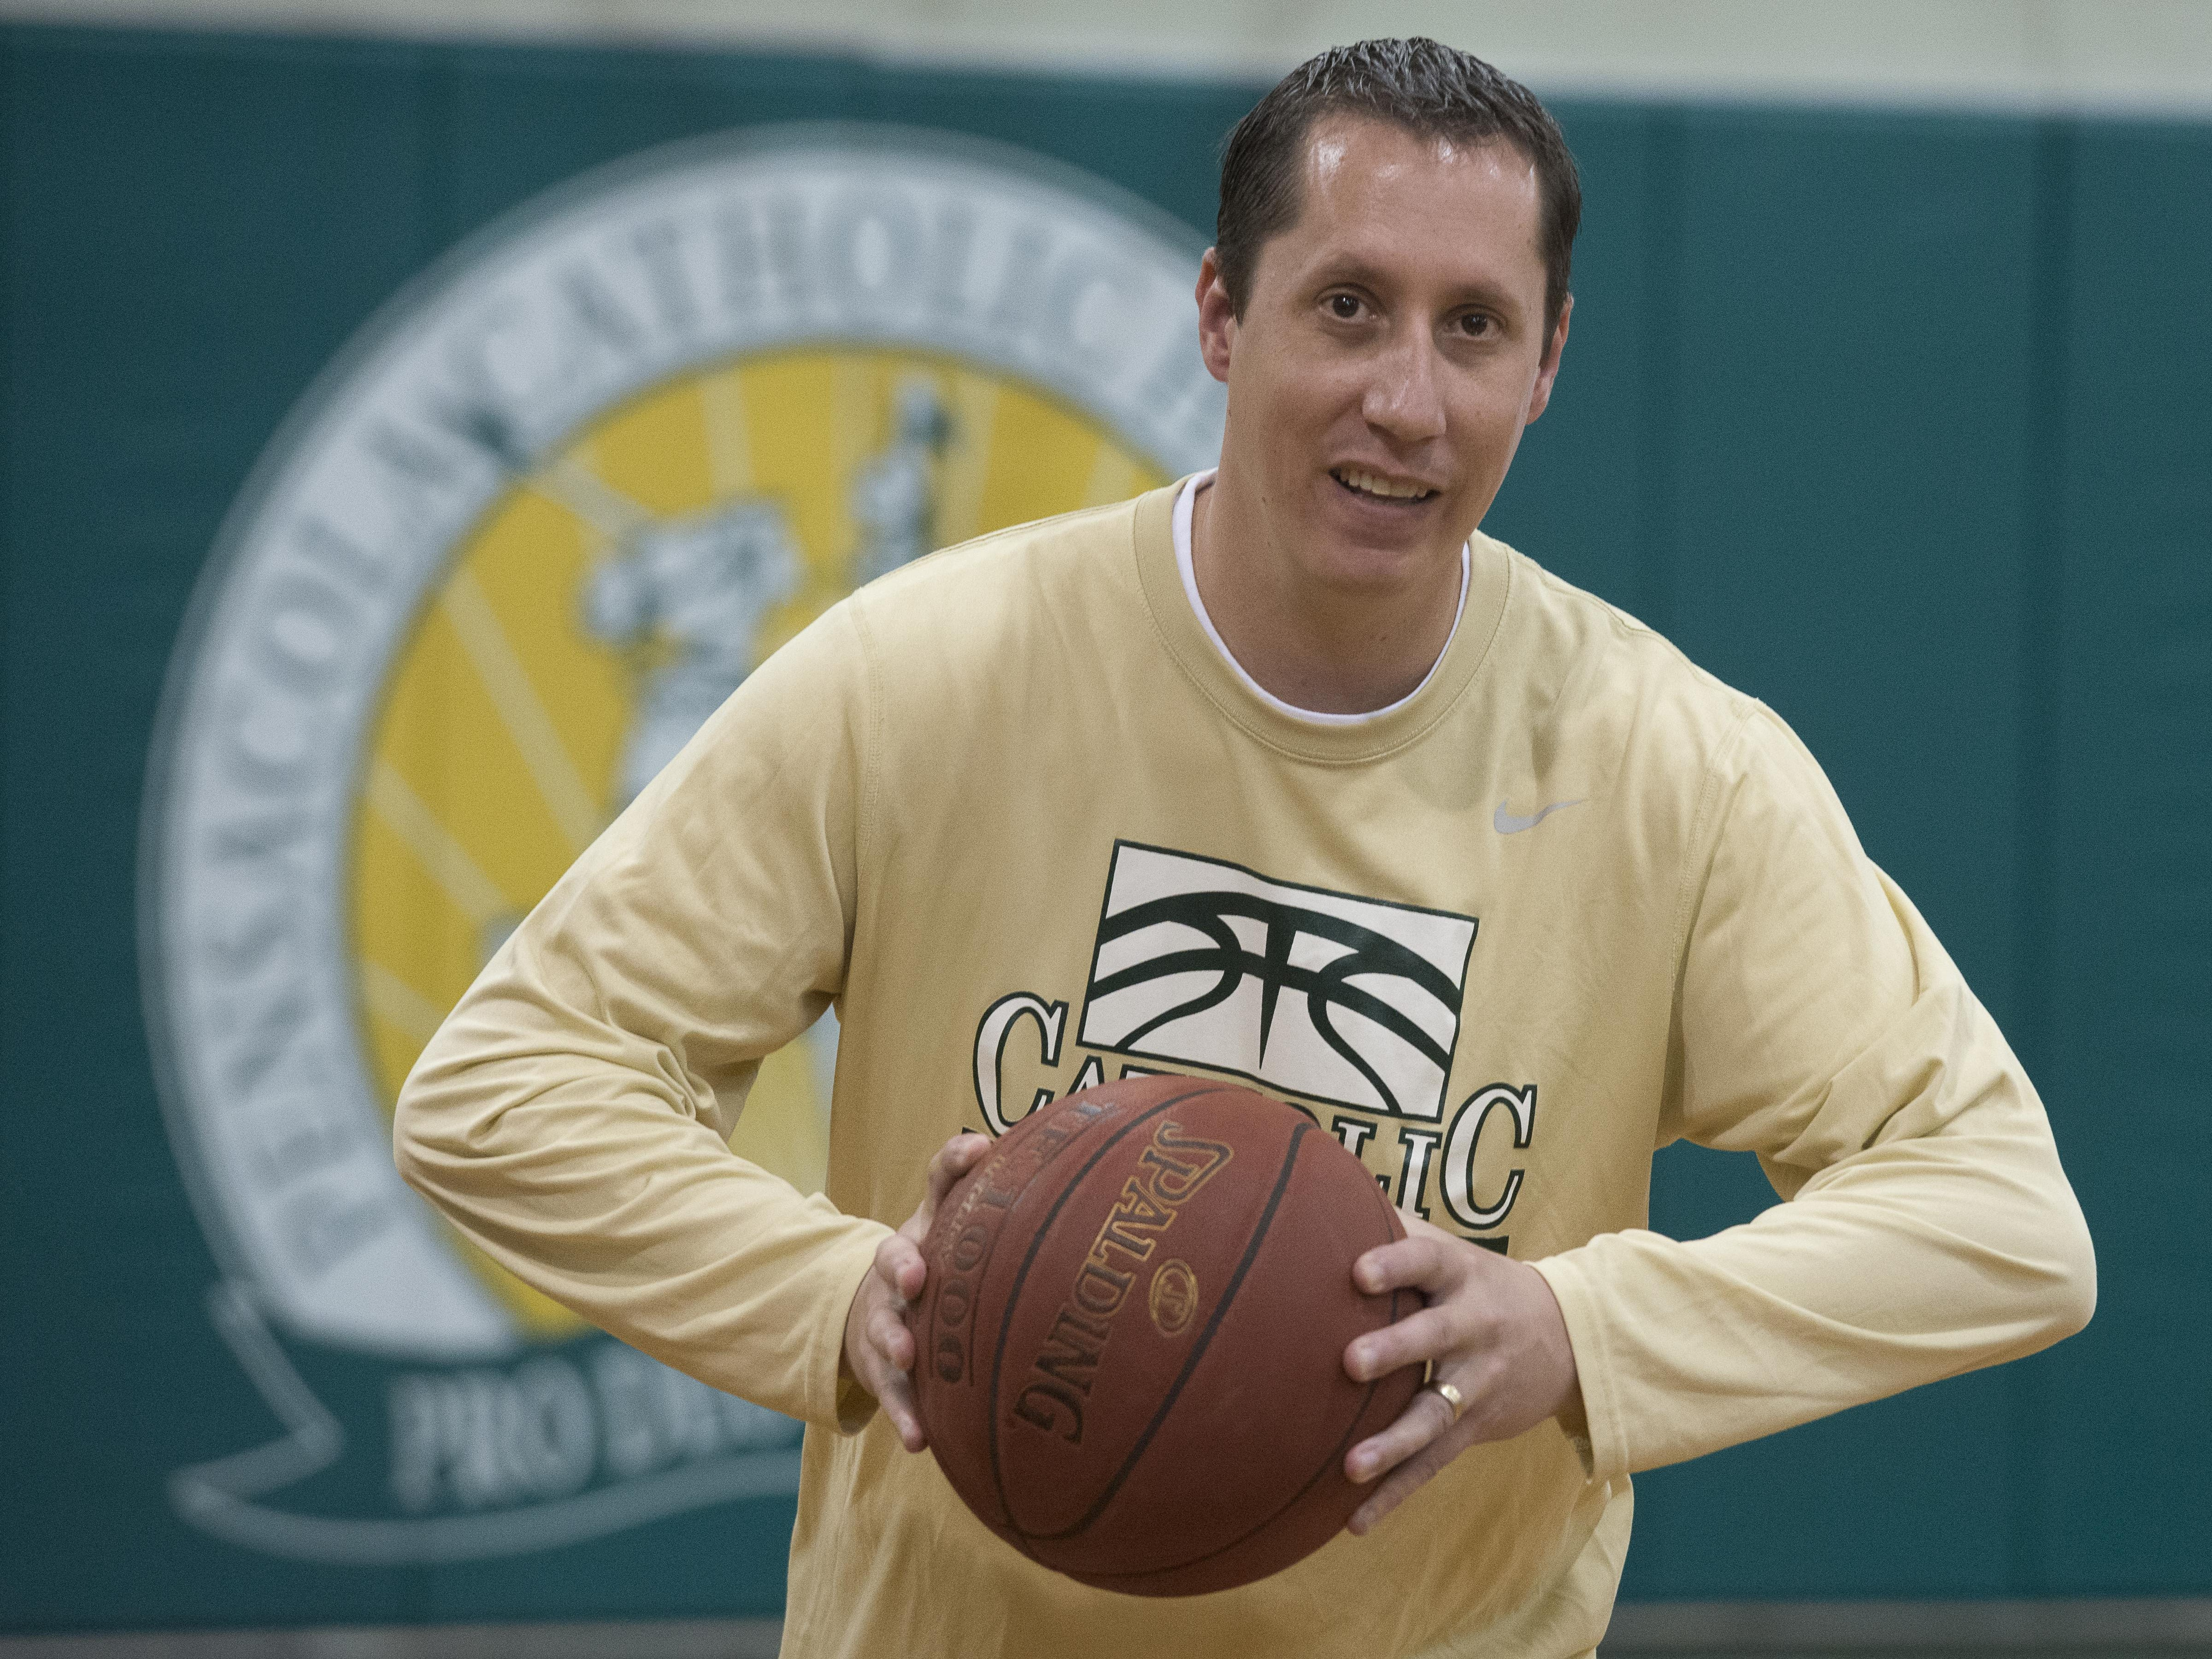 After 14-years at Catholic High School, Nick Mead is resigning as the Crusaders basketball coach.